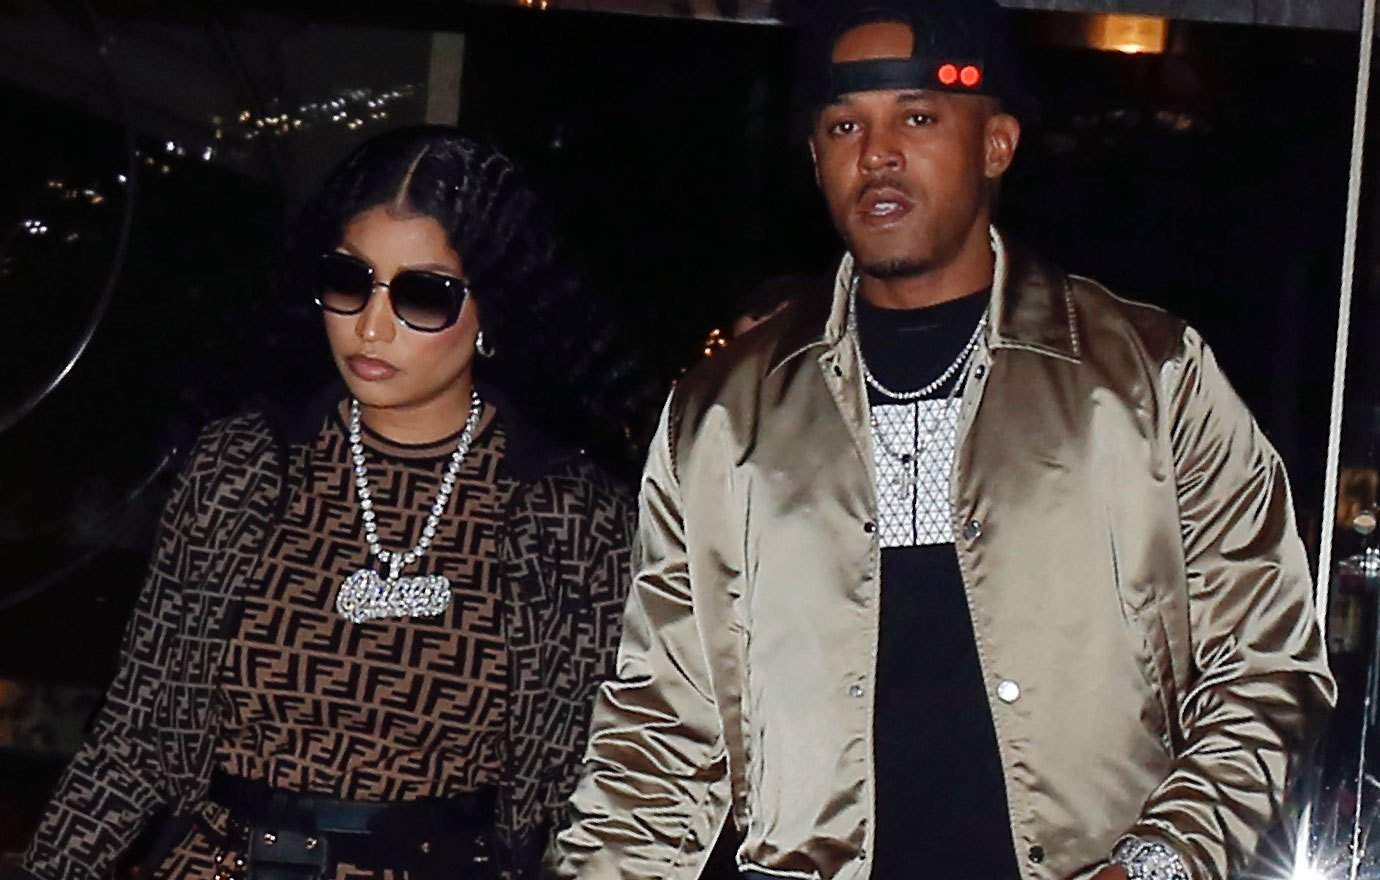 Nicki Minaj Gushes Over Her Sweetheart, Kenneth Petty - Check Out The Pic Since They Were Kids